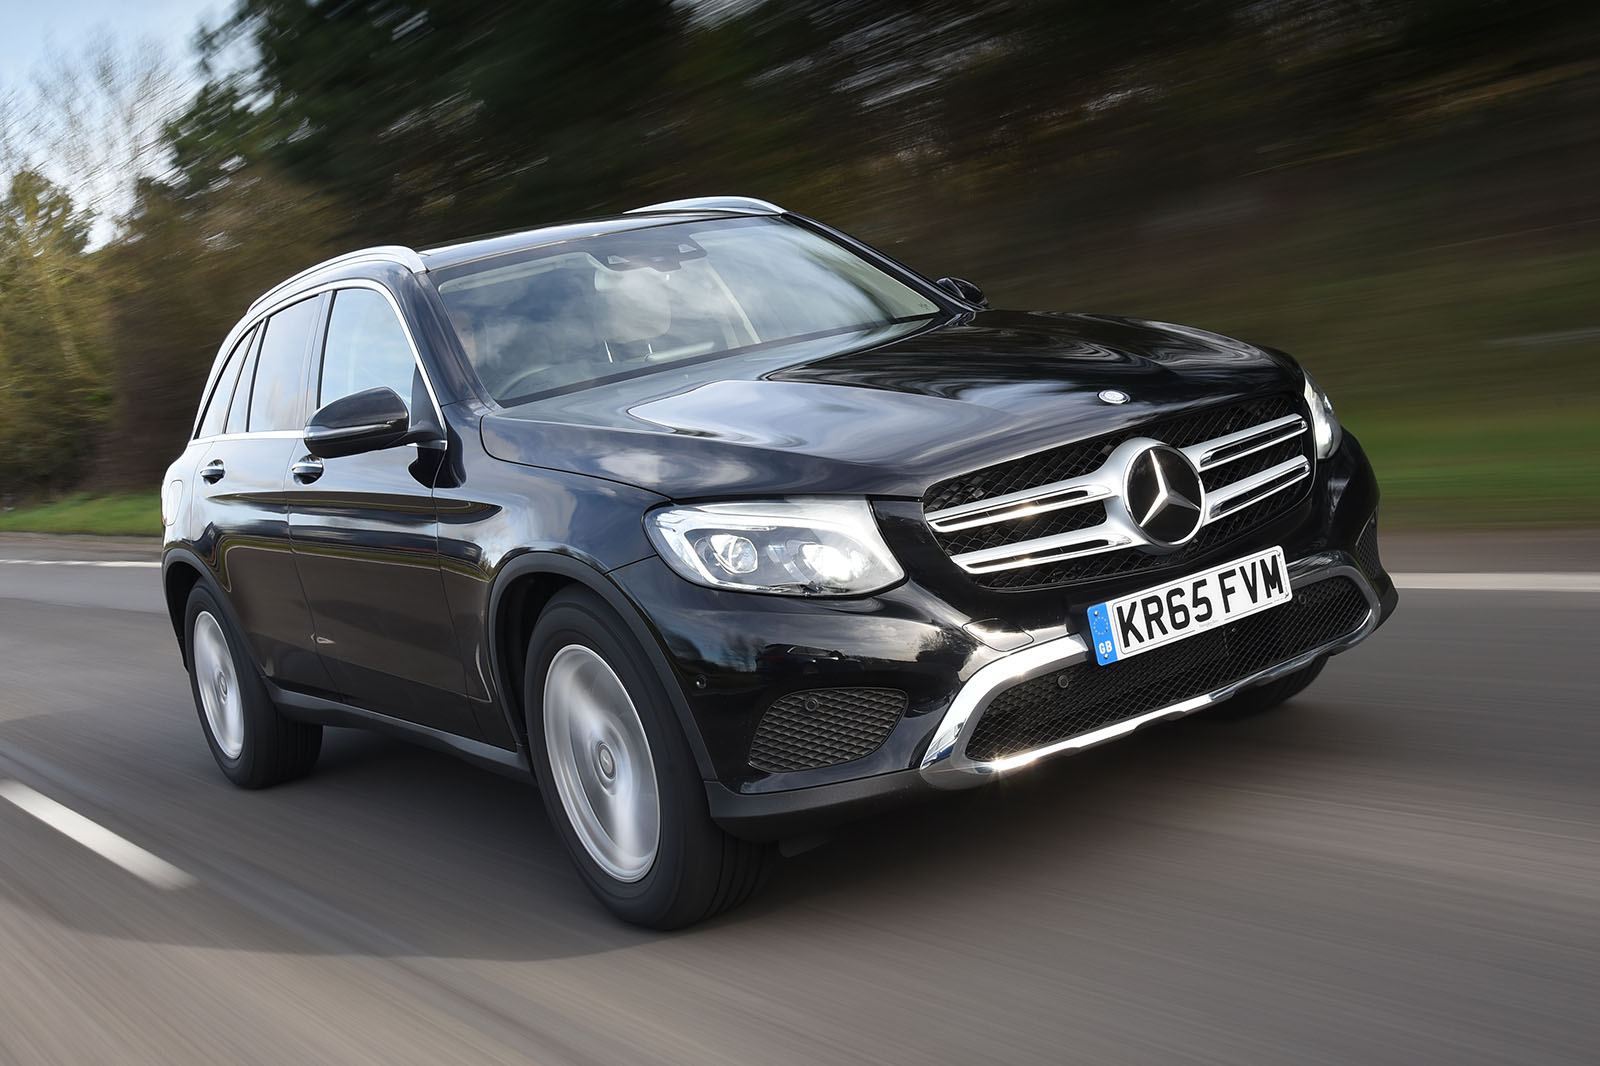 suv reviews gla review benz small mercedes